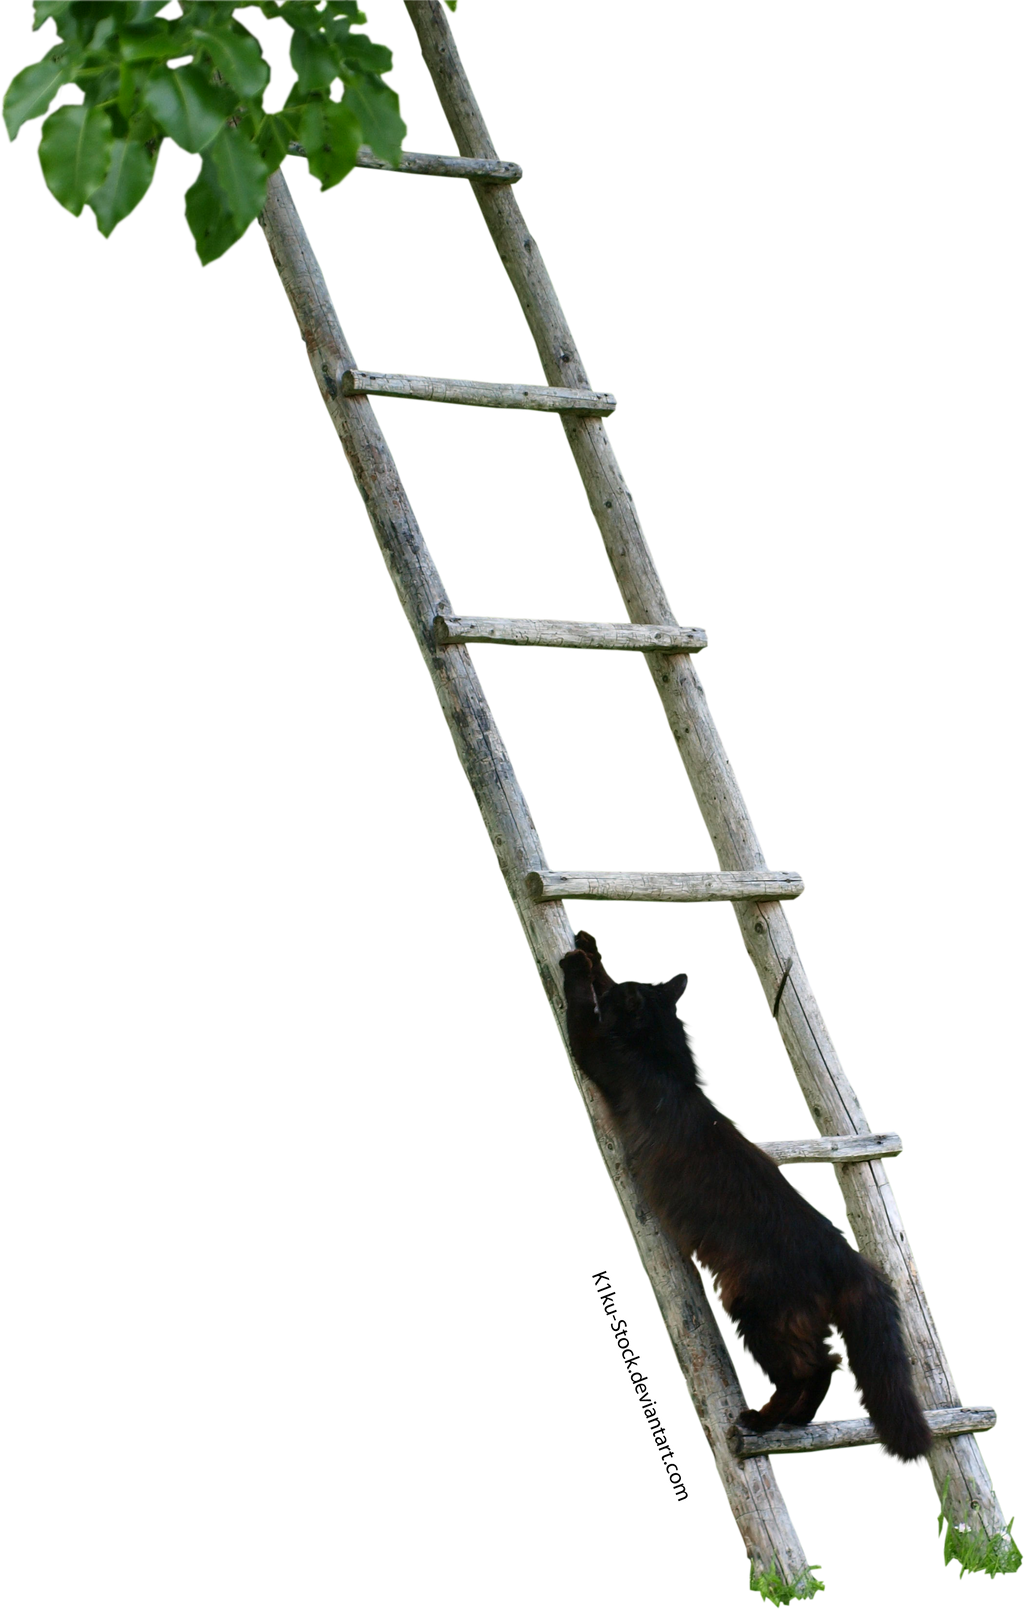 Black Cat Climbing a Ladder by K1ku-Stock